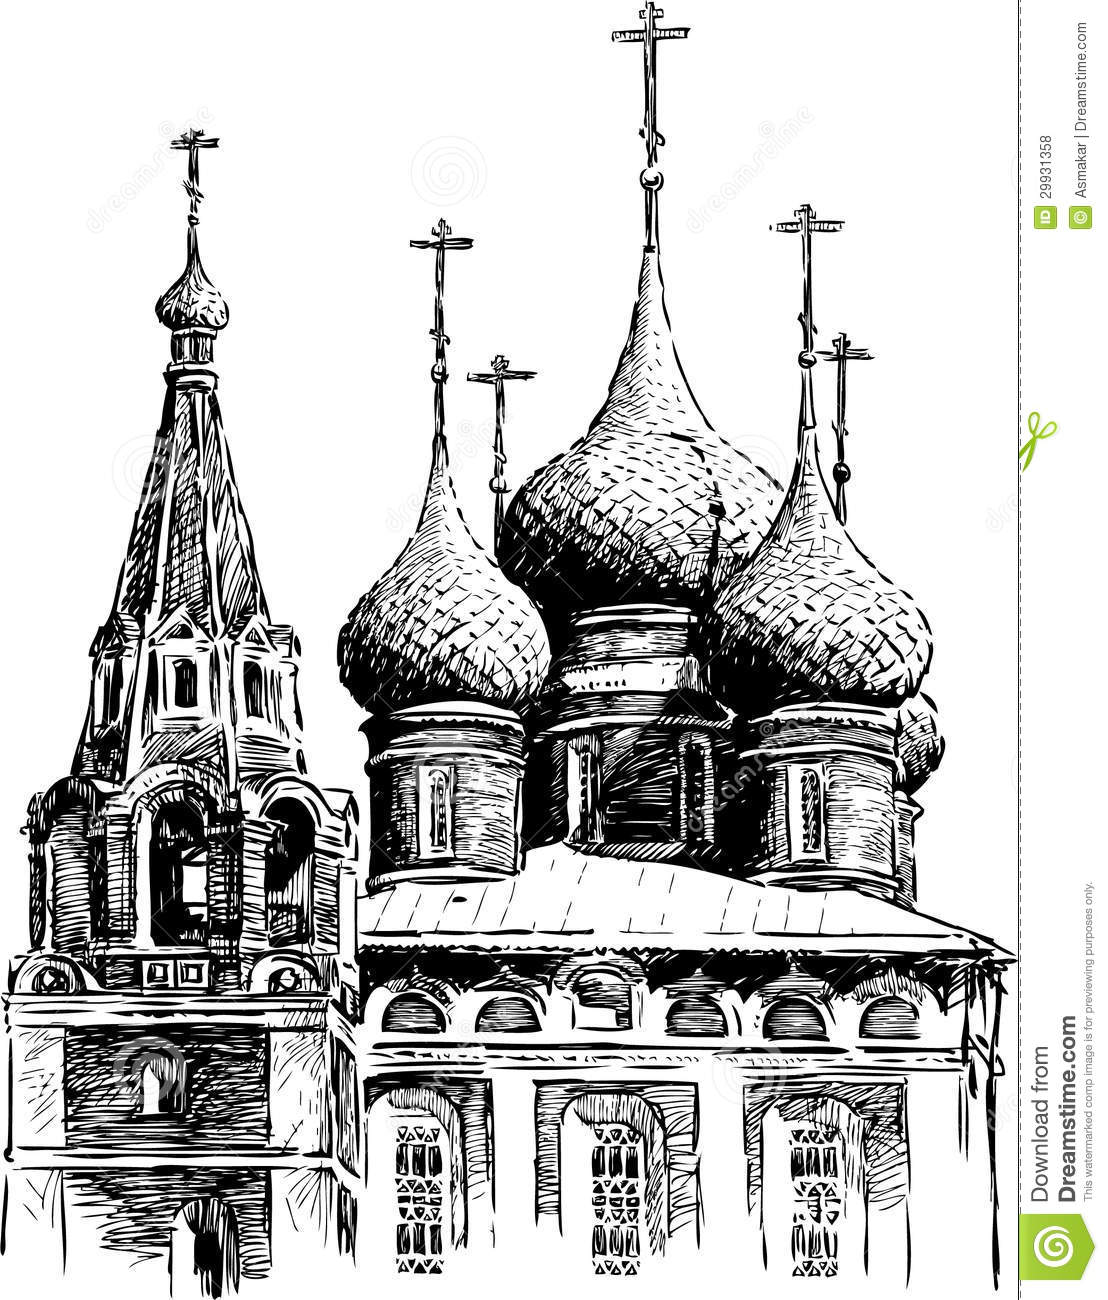 Schooner additionally Drawings furthermore Royalty Free Stock Photos Vector Drawing Ancient Cathedral Yaroslavl Russia Image29931358 additionally Stock Illustration Cartoon Big Bad Wolf Blowing besides 7 Easy Ways Prevent Injuries And Keep Your Kids Safe. on easy to draw house plans